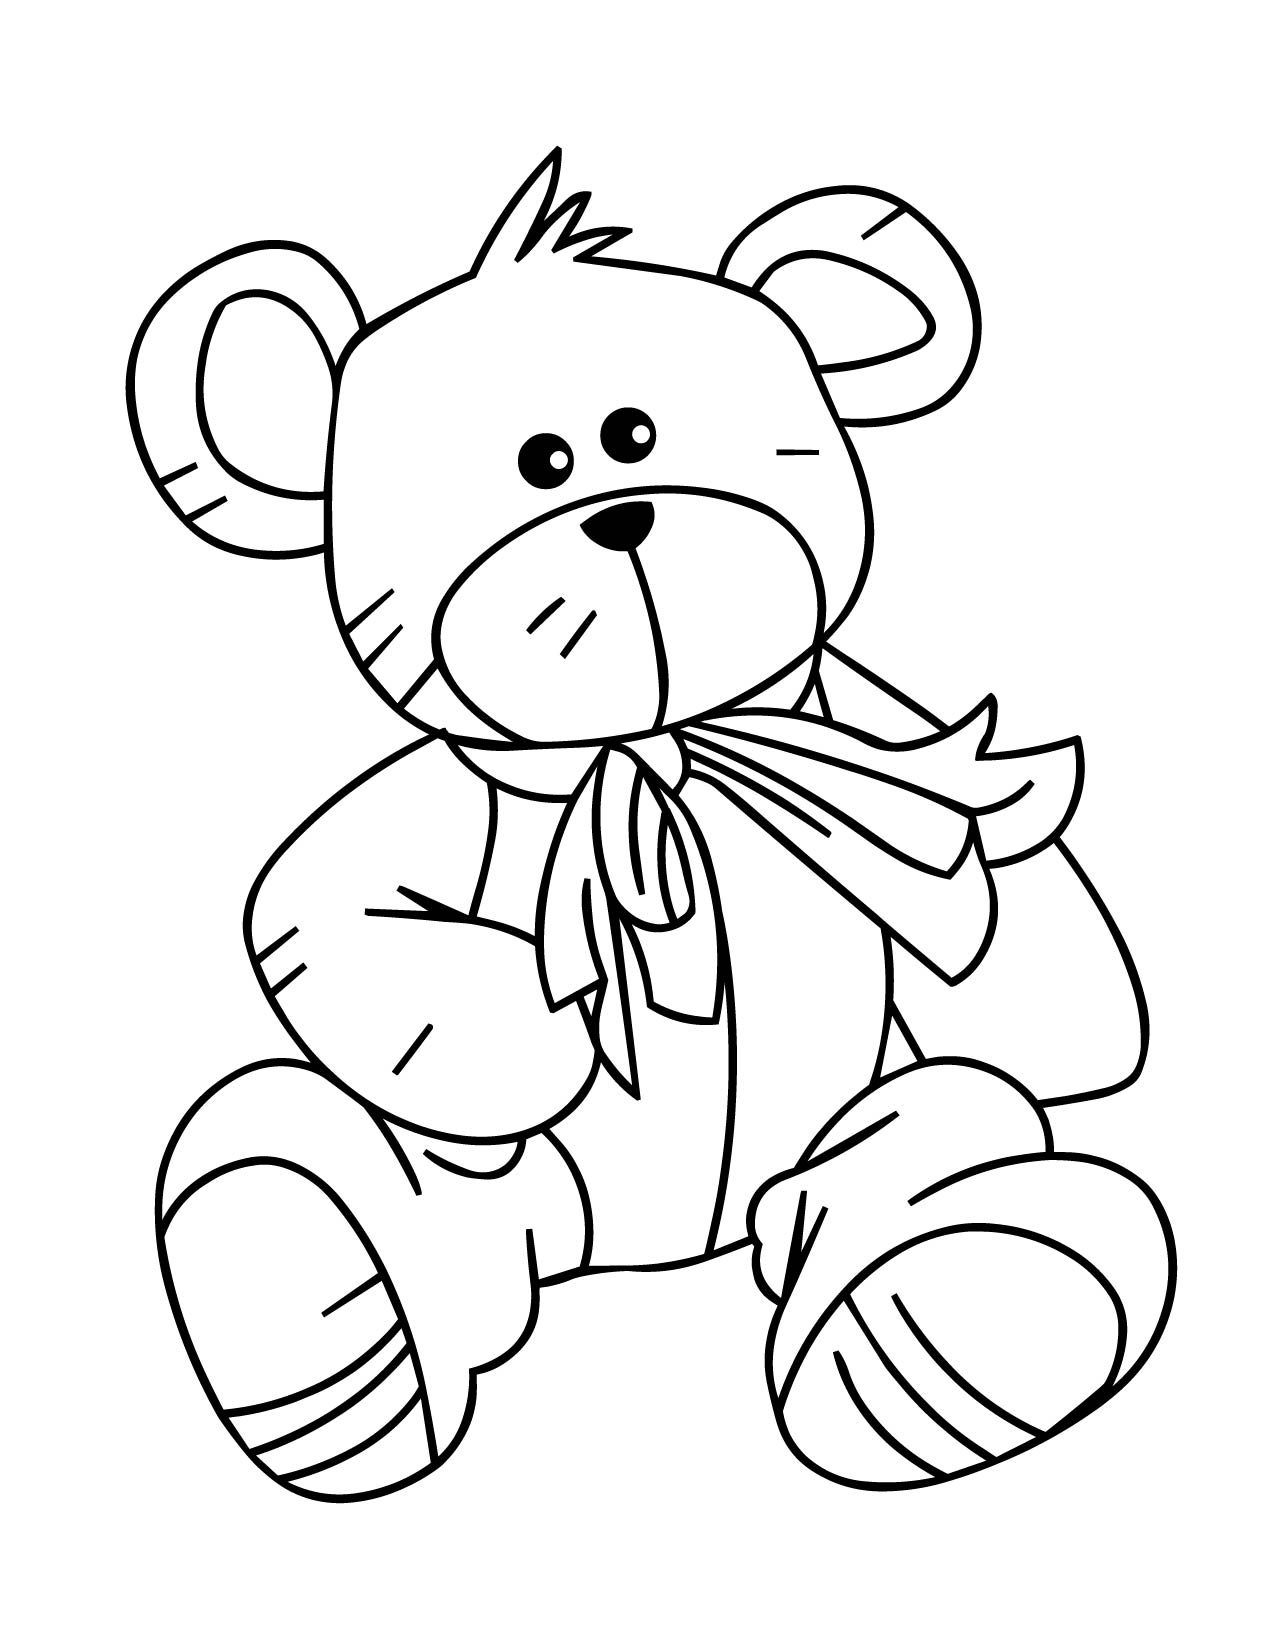 Cool Teddy Bear Drawings